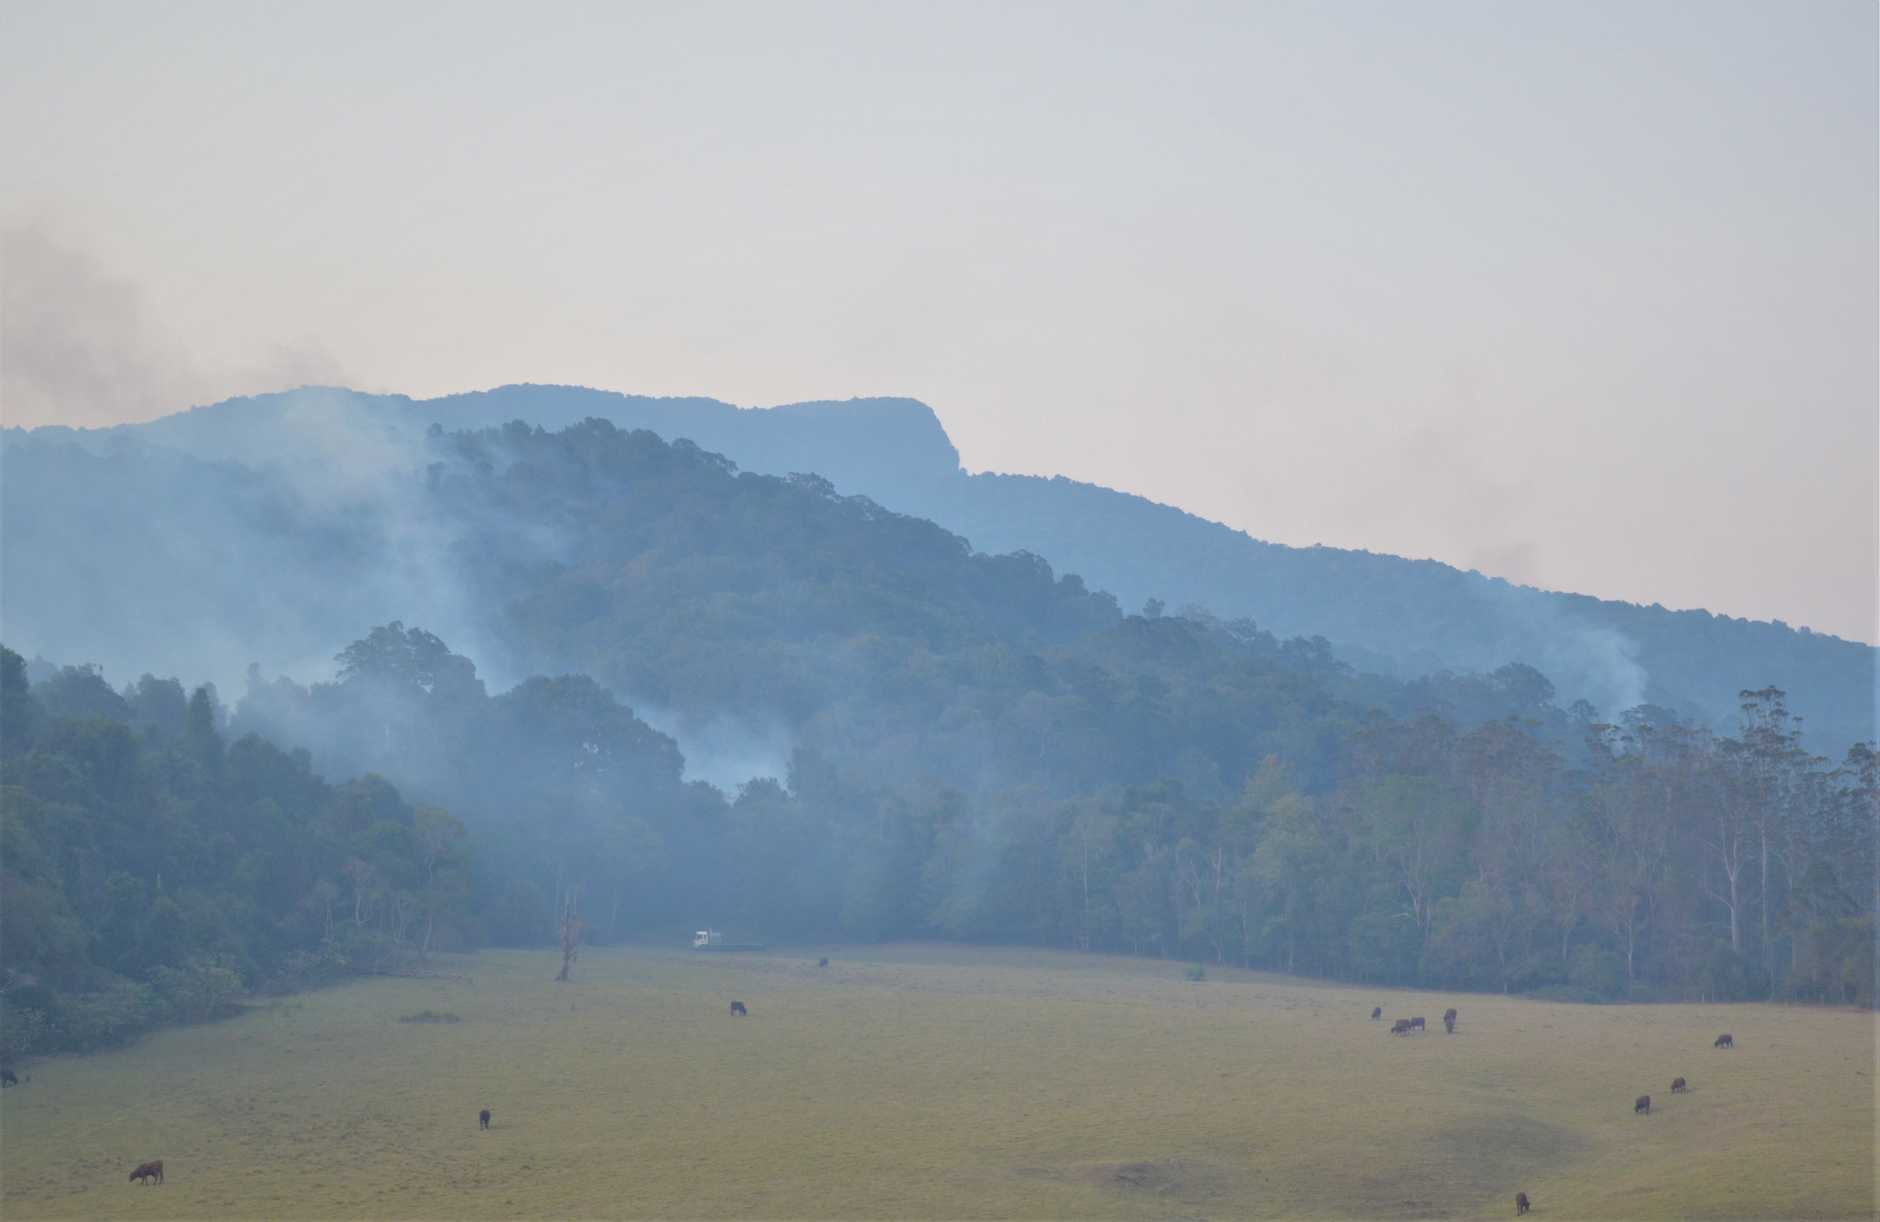 SMOKY MOUNTAINS: Bushfires continue to plague the area around Spring Creek Rd.